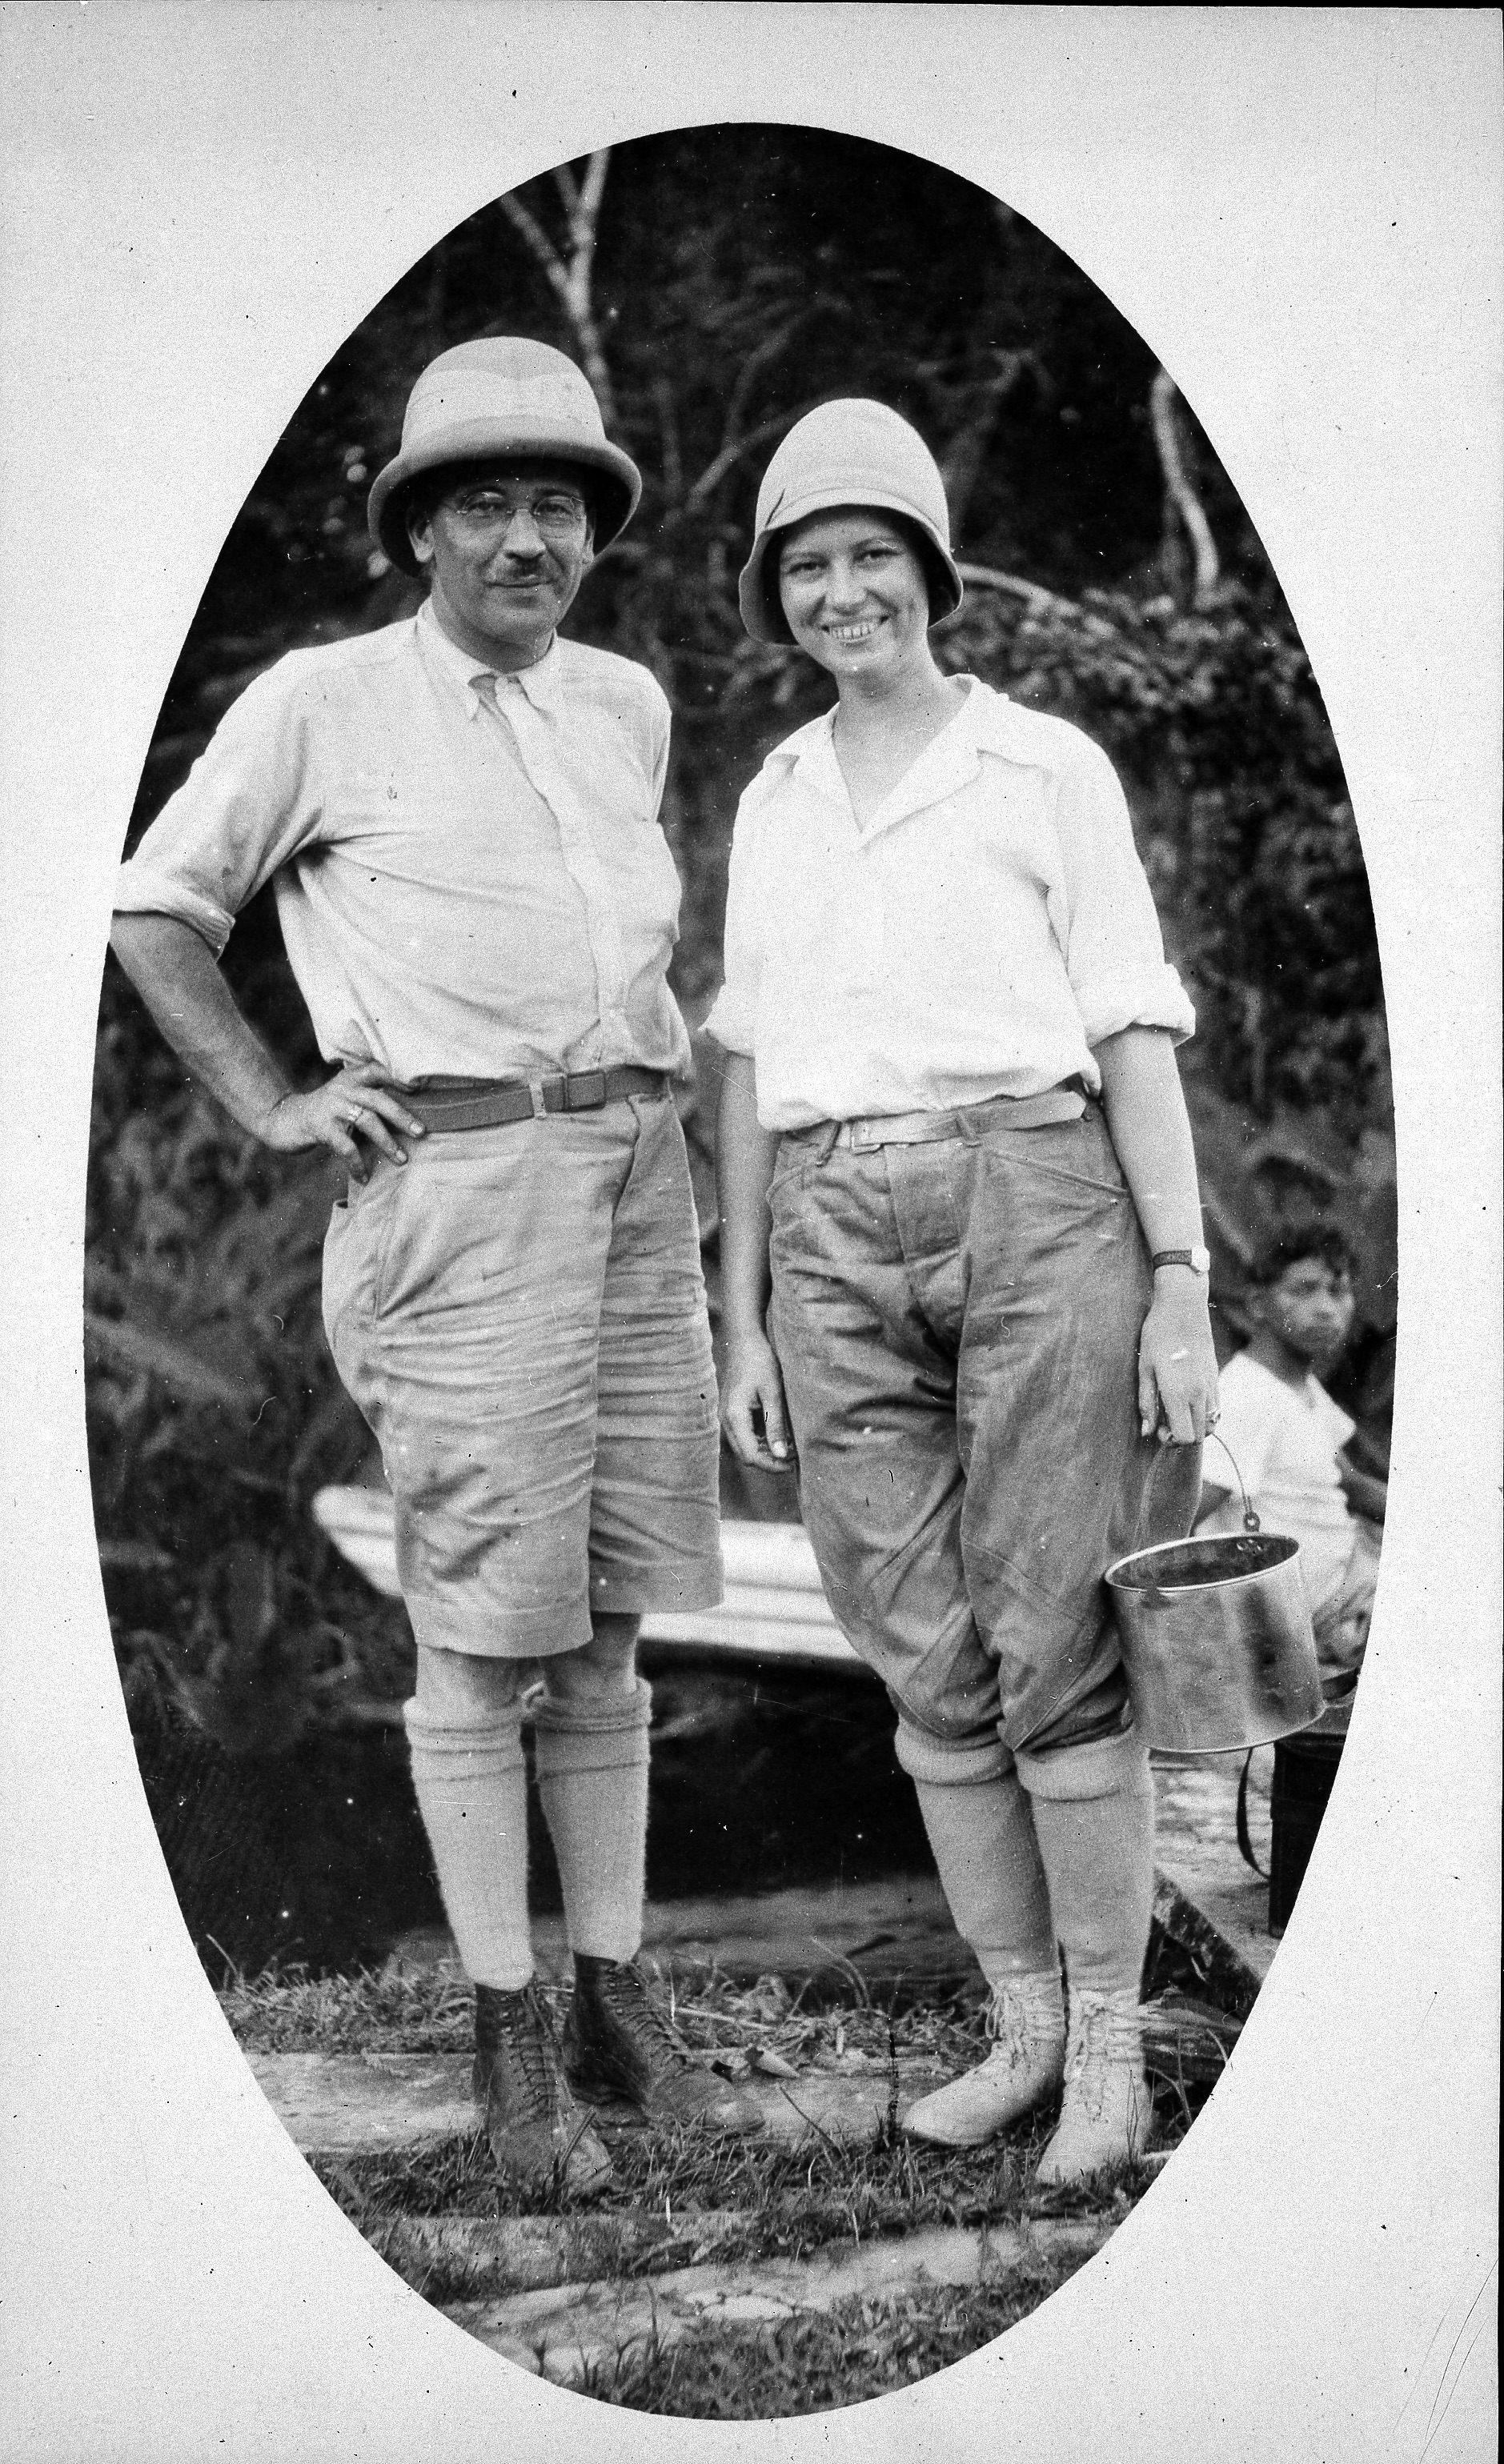 William and Lucile Quarry Mann in the field. Both are wearing hats and high socks.